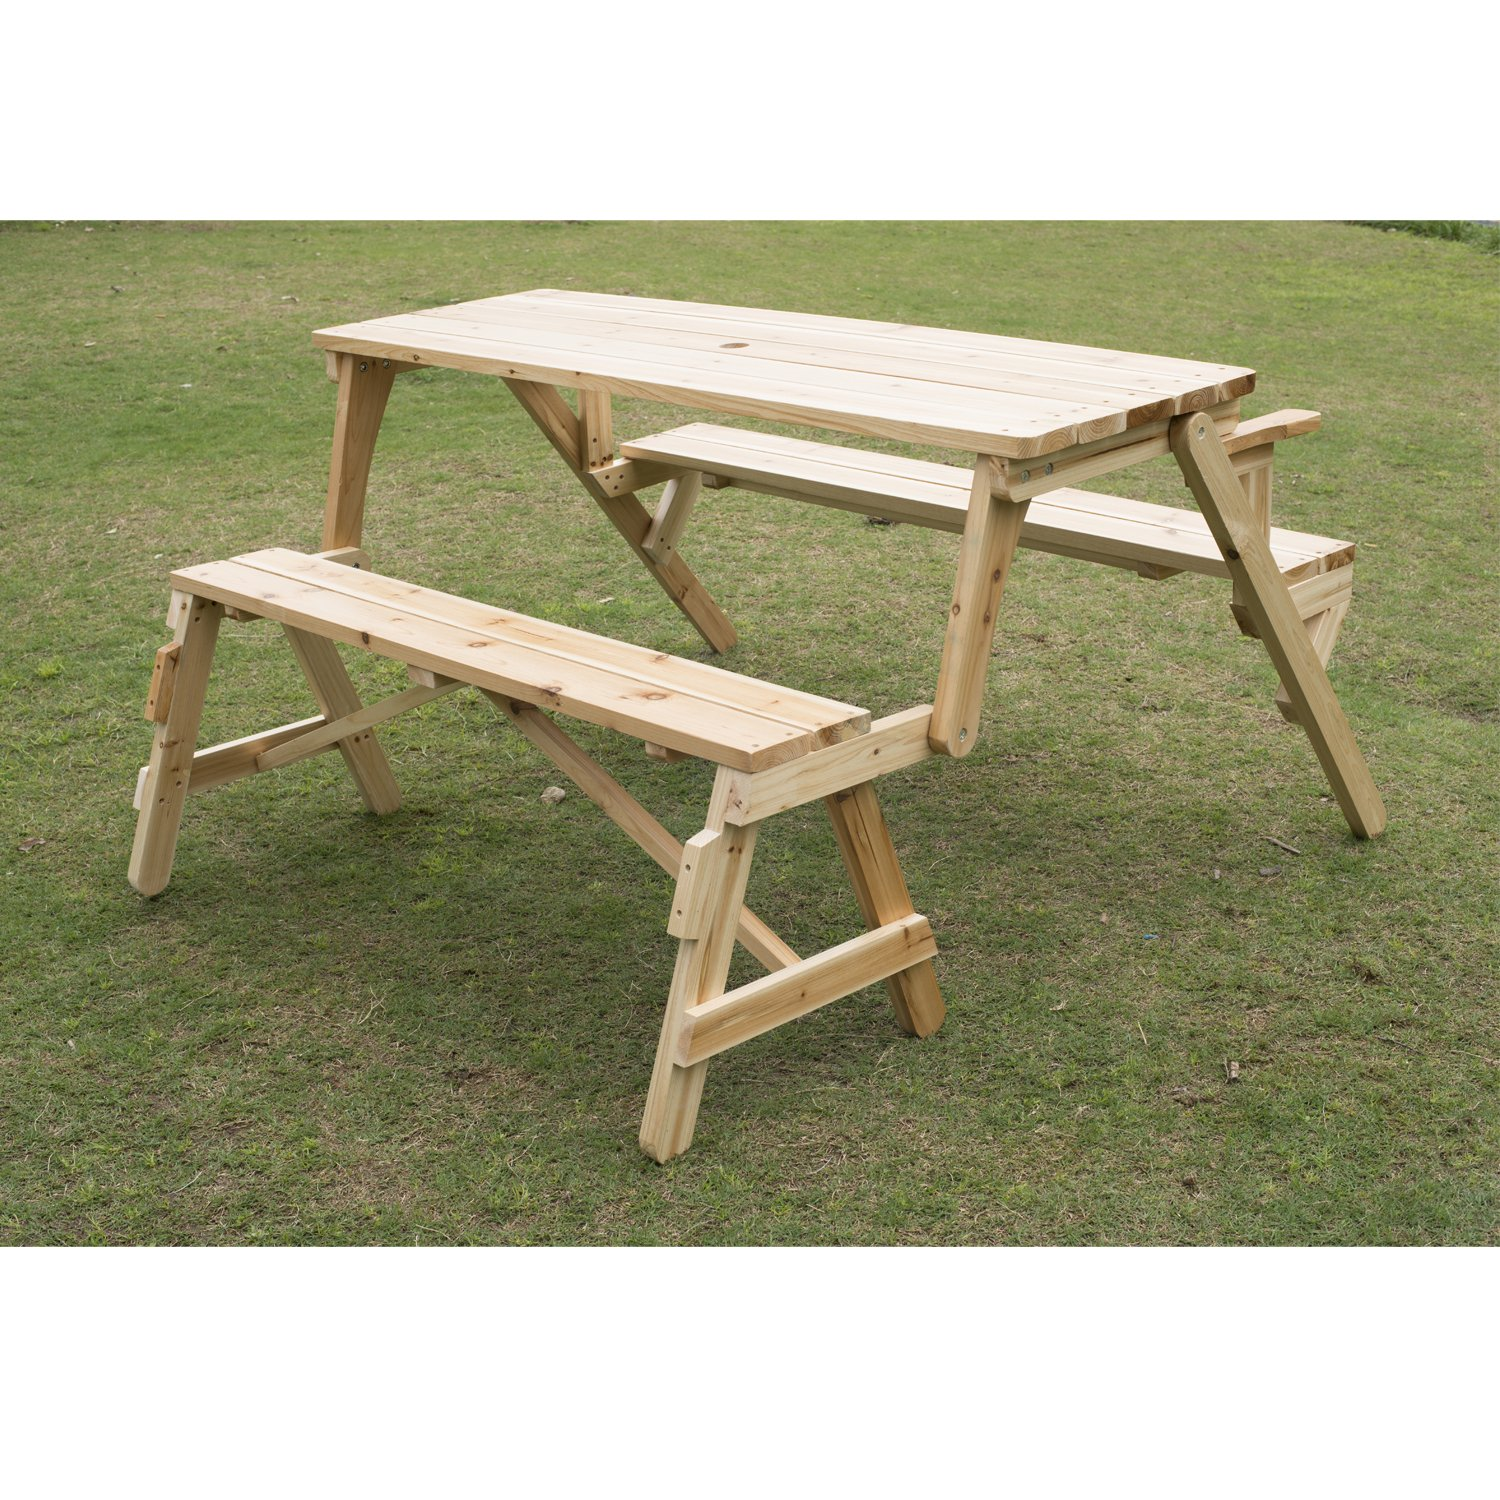 bench and table benchtable backyard in at s finest one furniture picnic it is this ideas to all diy